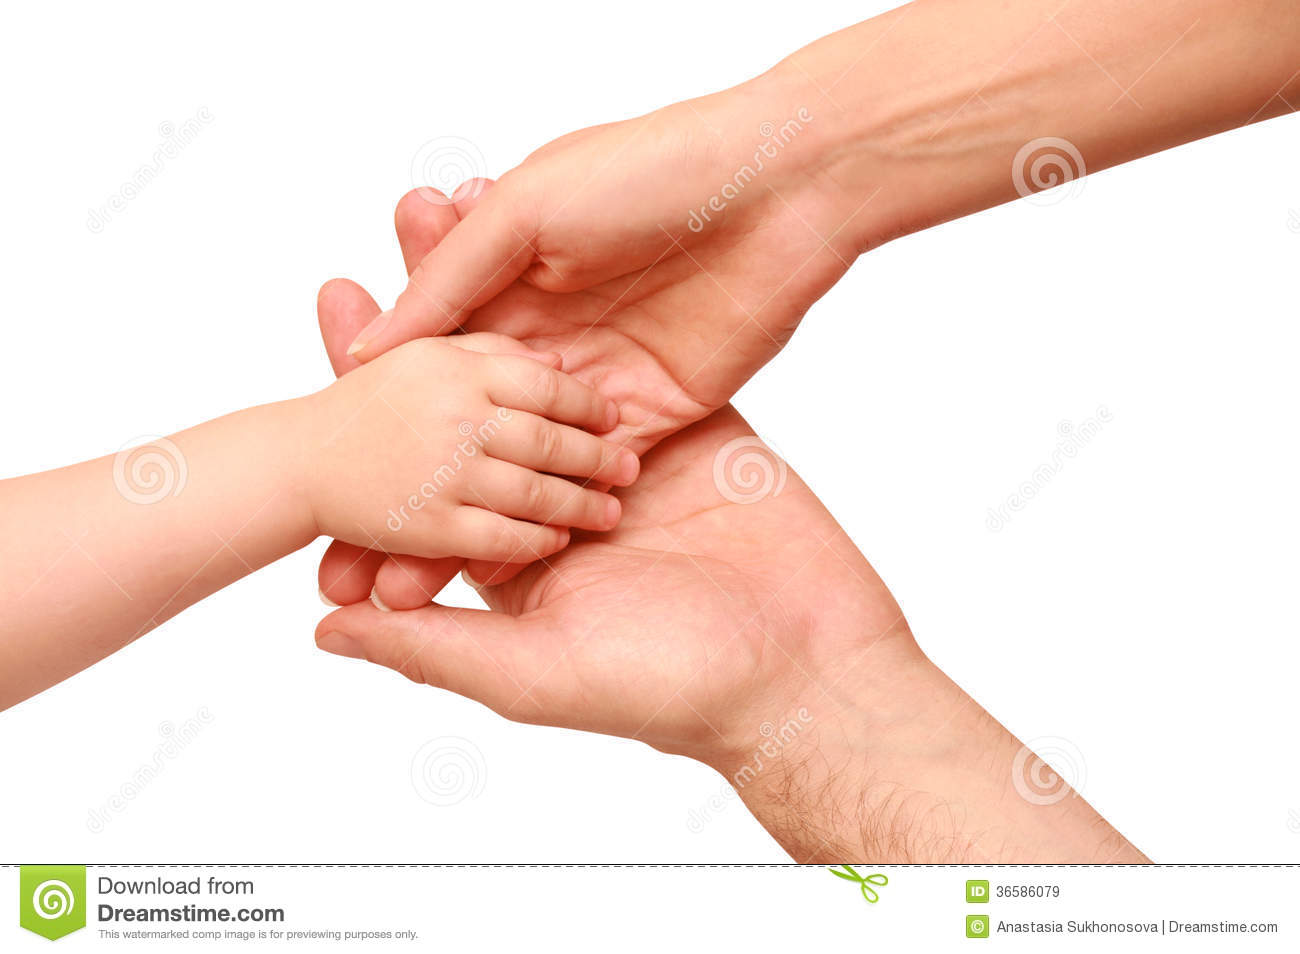 how to ask parents for hand